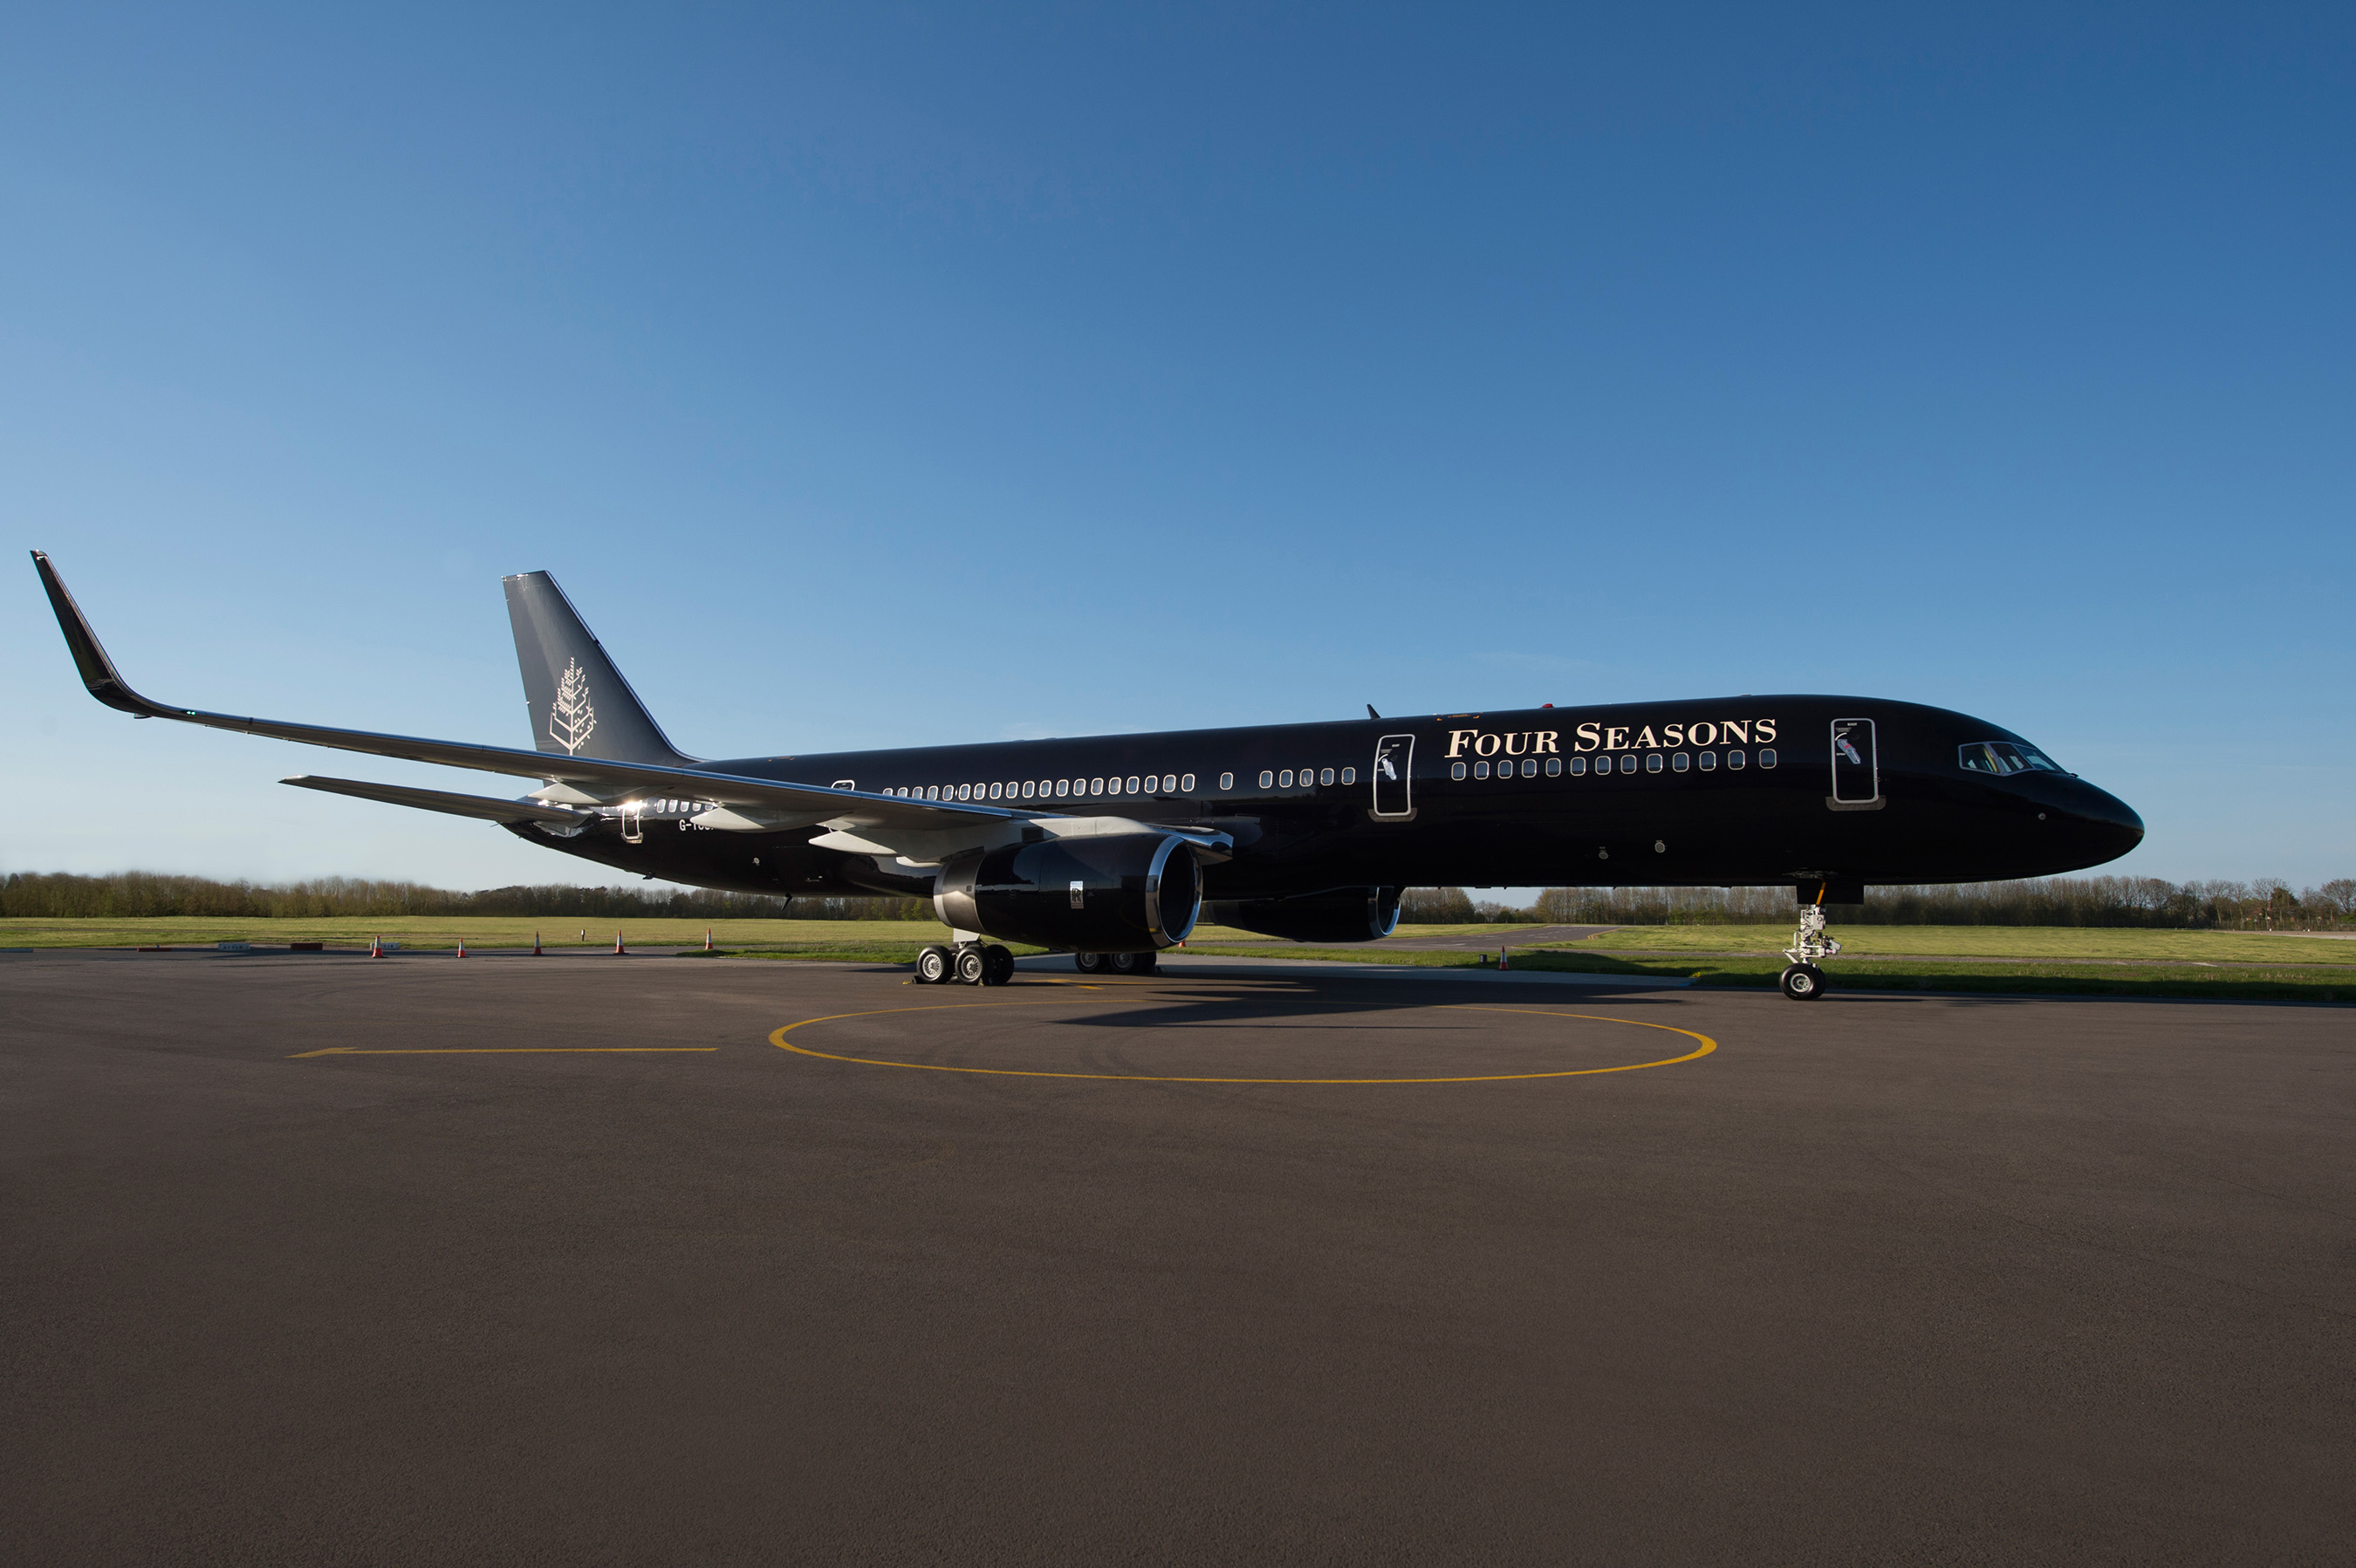 Four seasons super exclusive private jet revealed for Small luxury hotel 7 little words